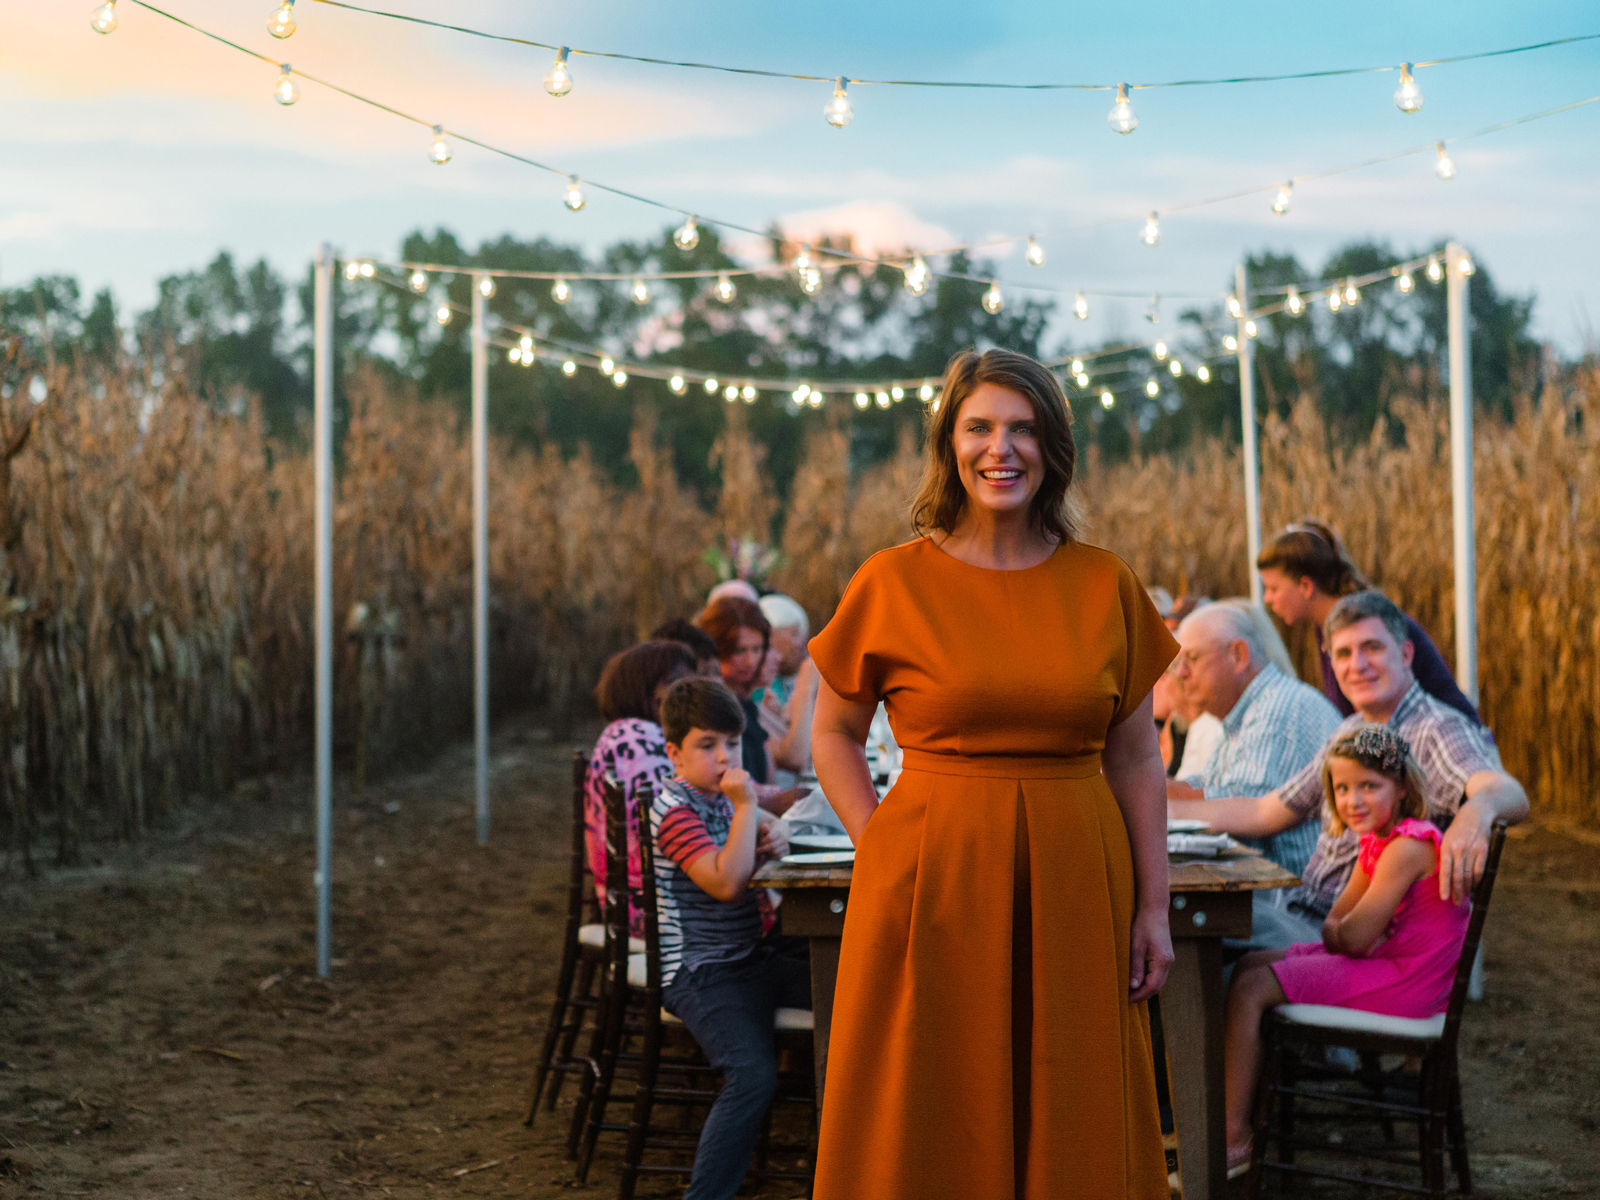 Vivian Howard to Wrap Up 'A Chef's Life' with Harvest Special